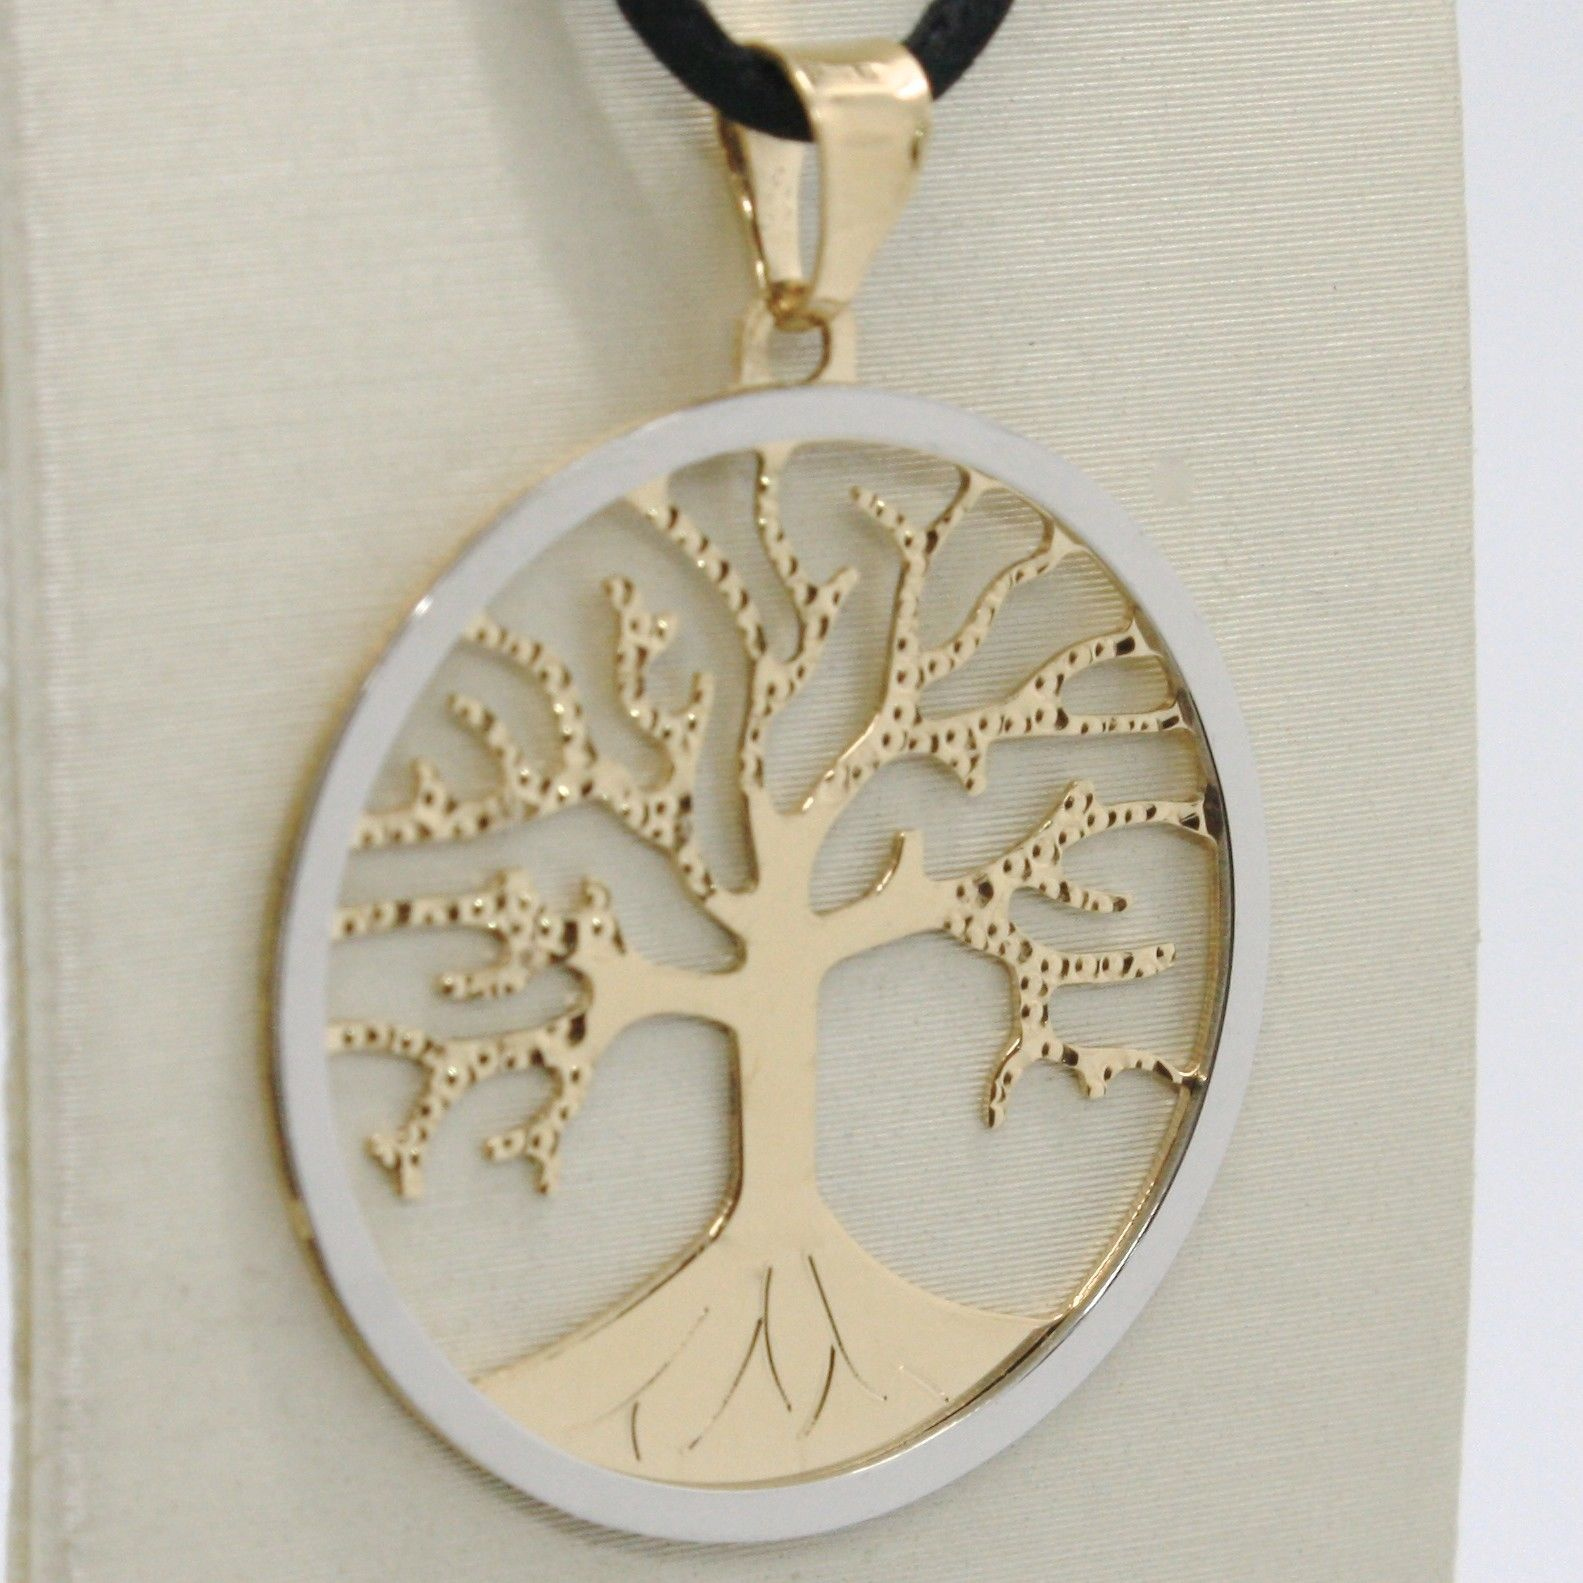 18K YELLOW WHITE GOLD TREE OF LIFE PENDANT CHARM MEDAL 1.2 INCHES MADE IN ITALY